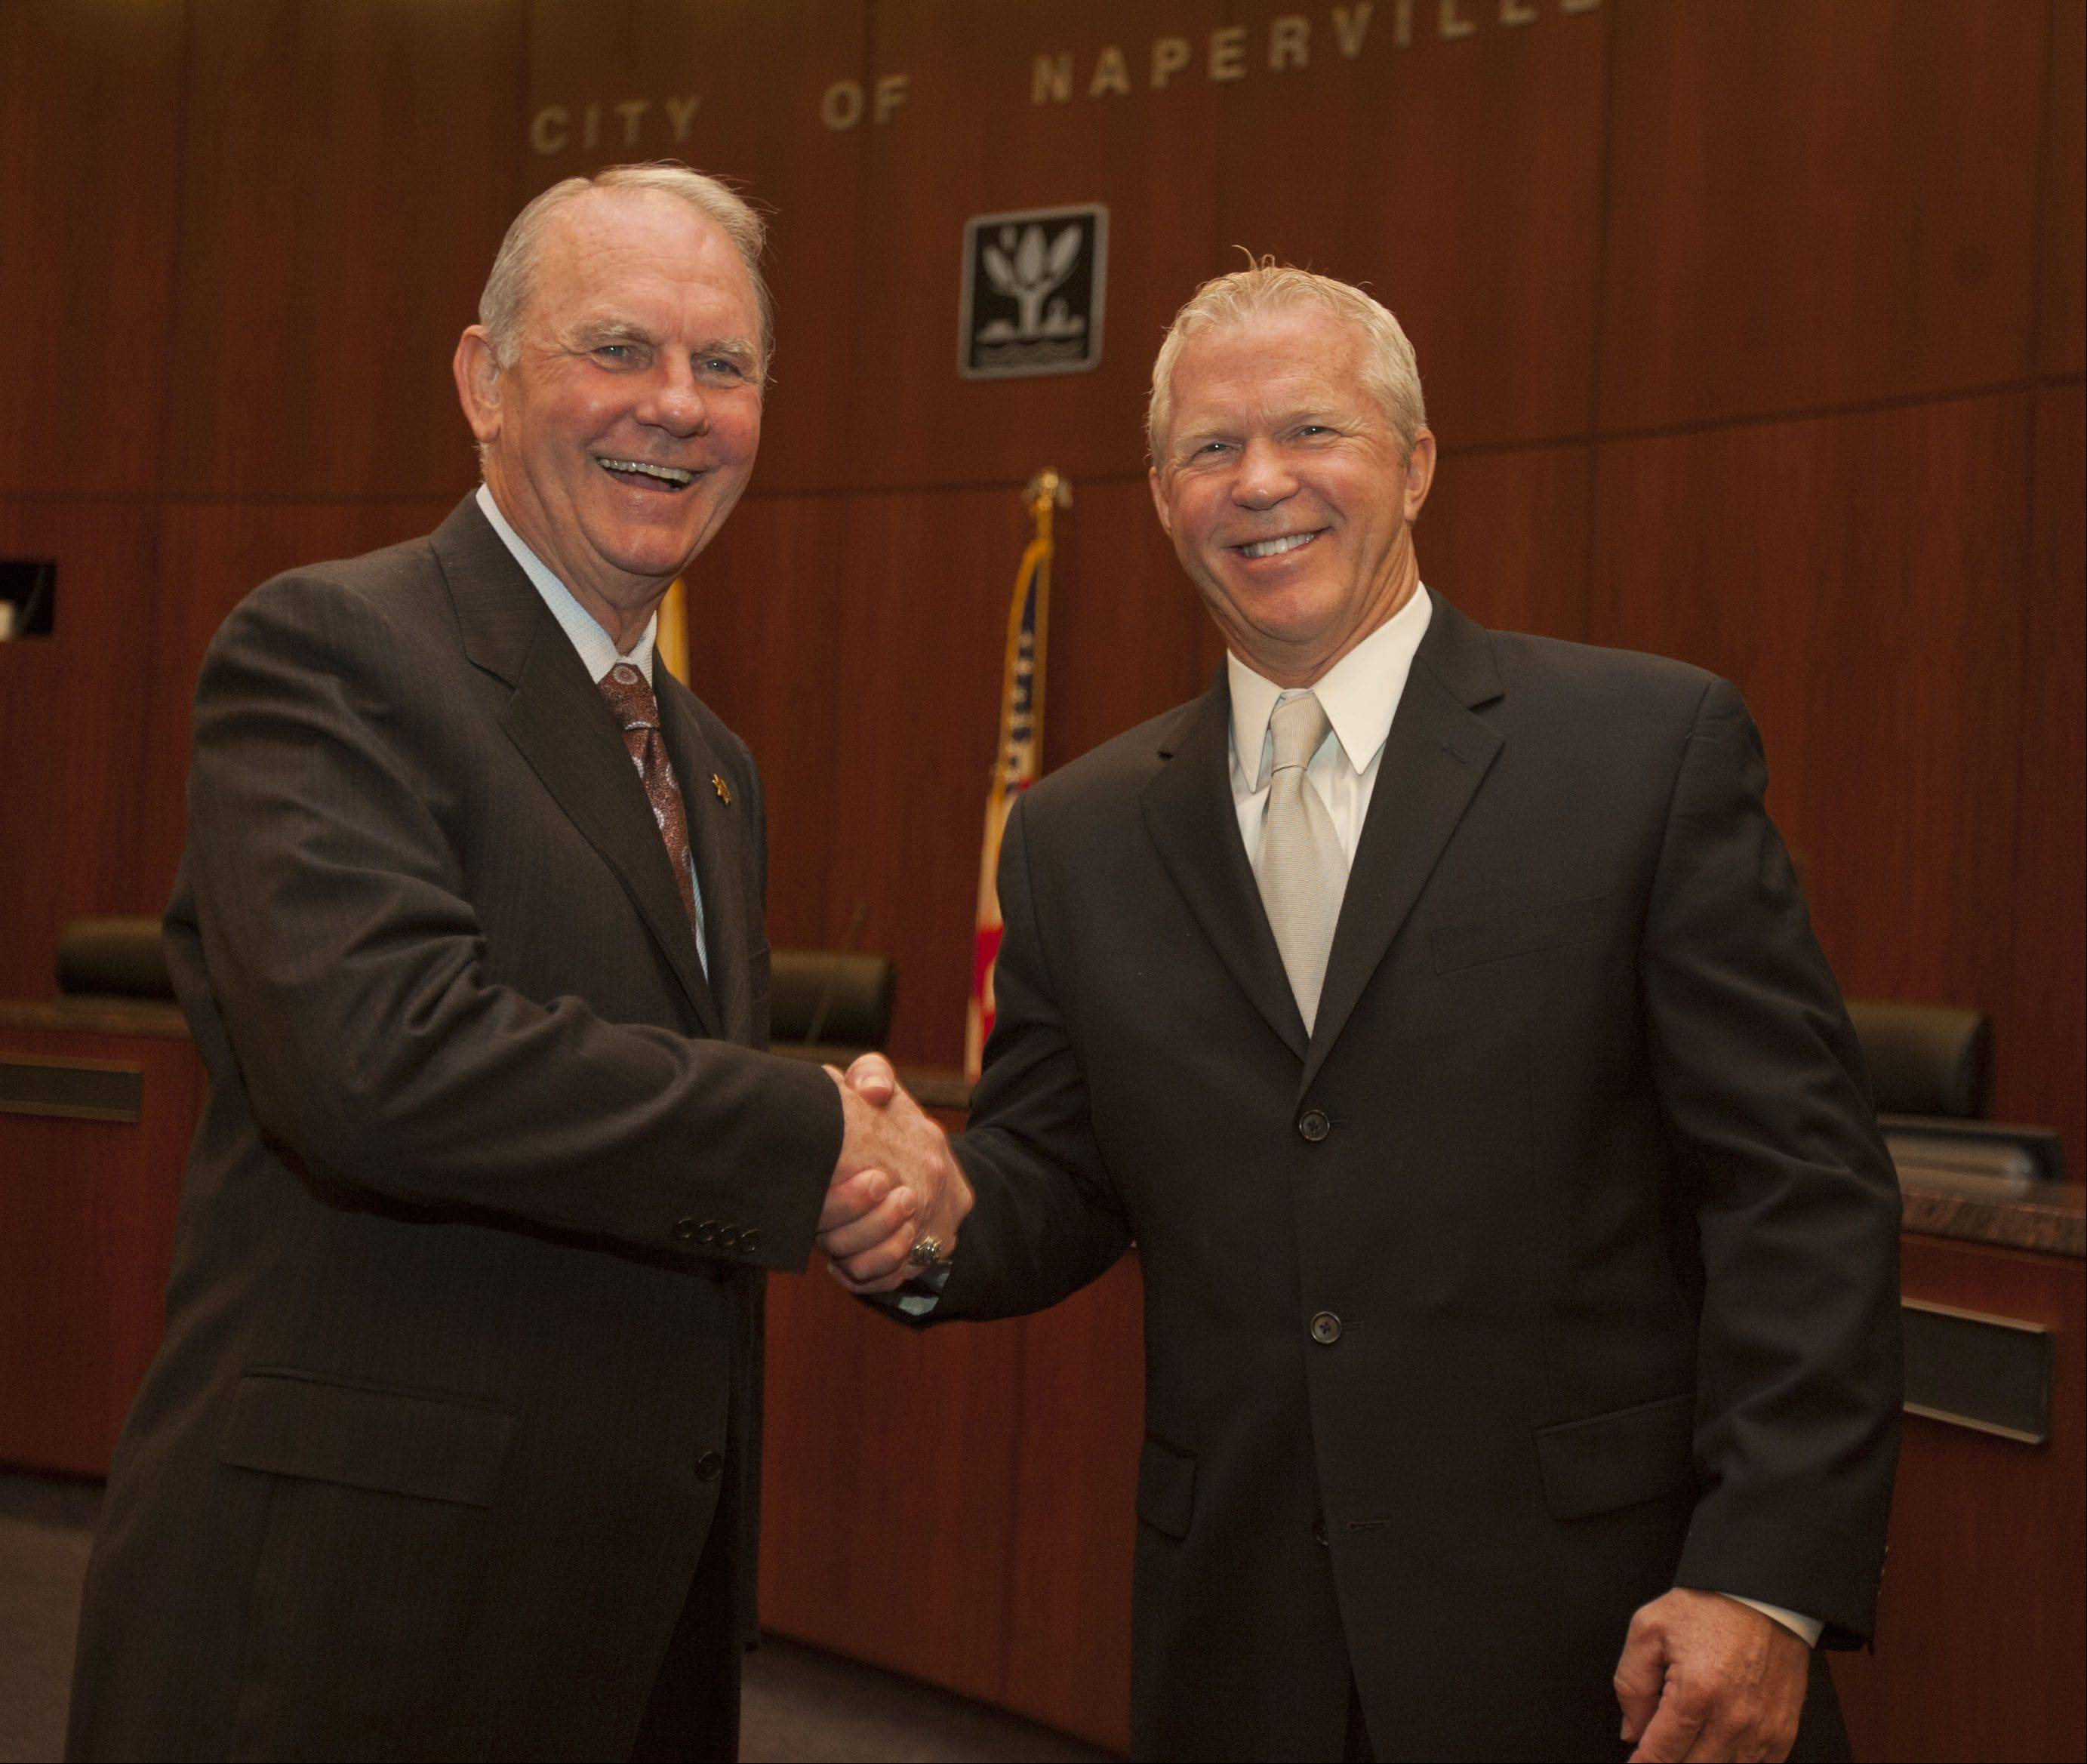 Retired Naperville police chief gets $50,000 for 3 months work